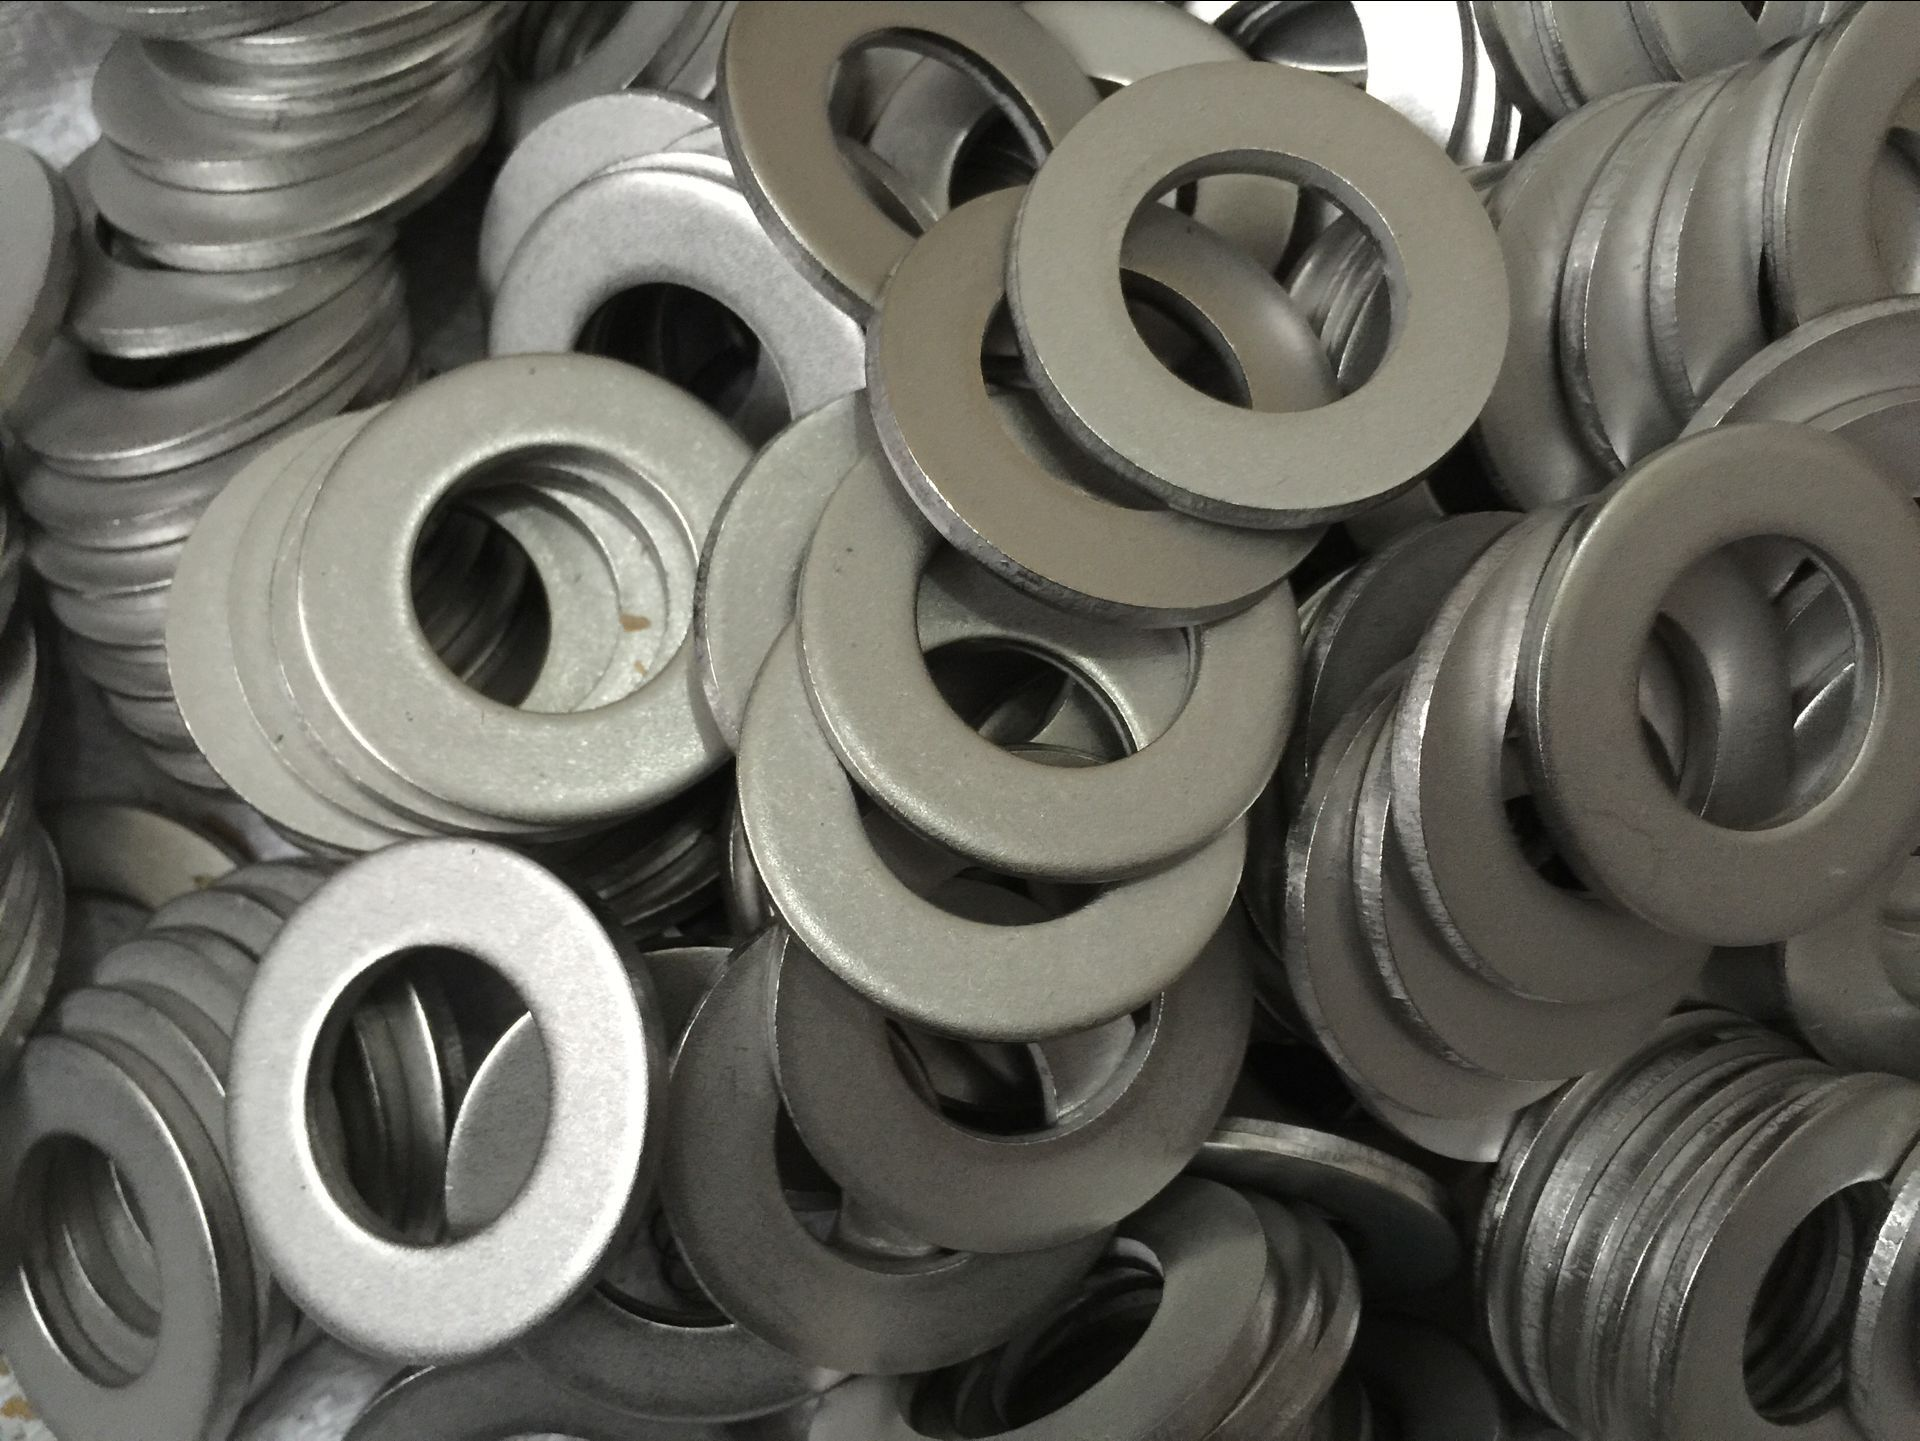 ASTM A193 B8C stud bolt with ASTM A194 8C nuts